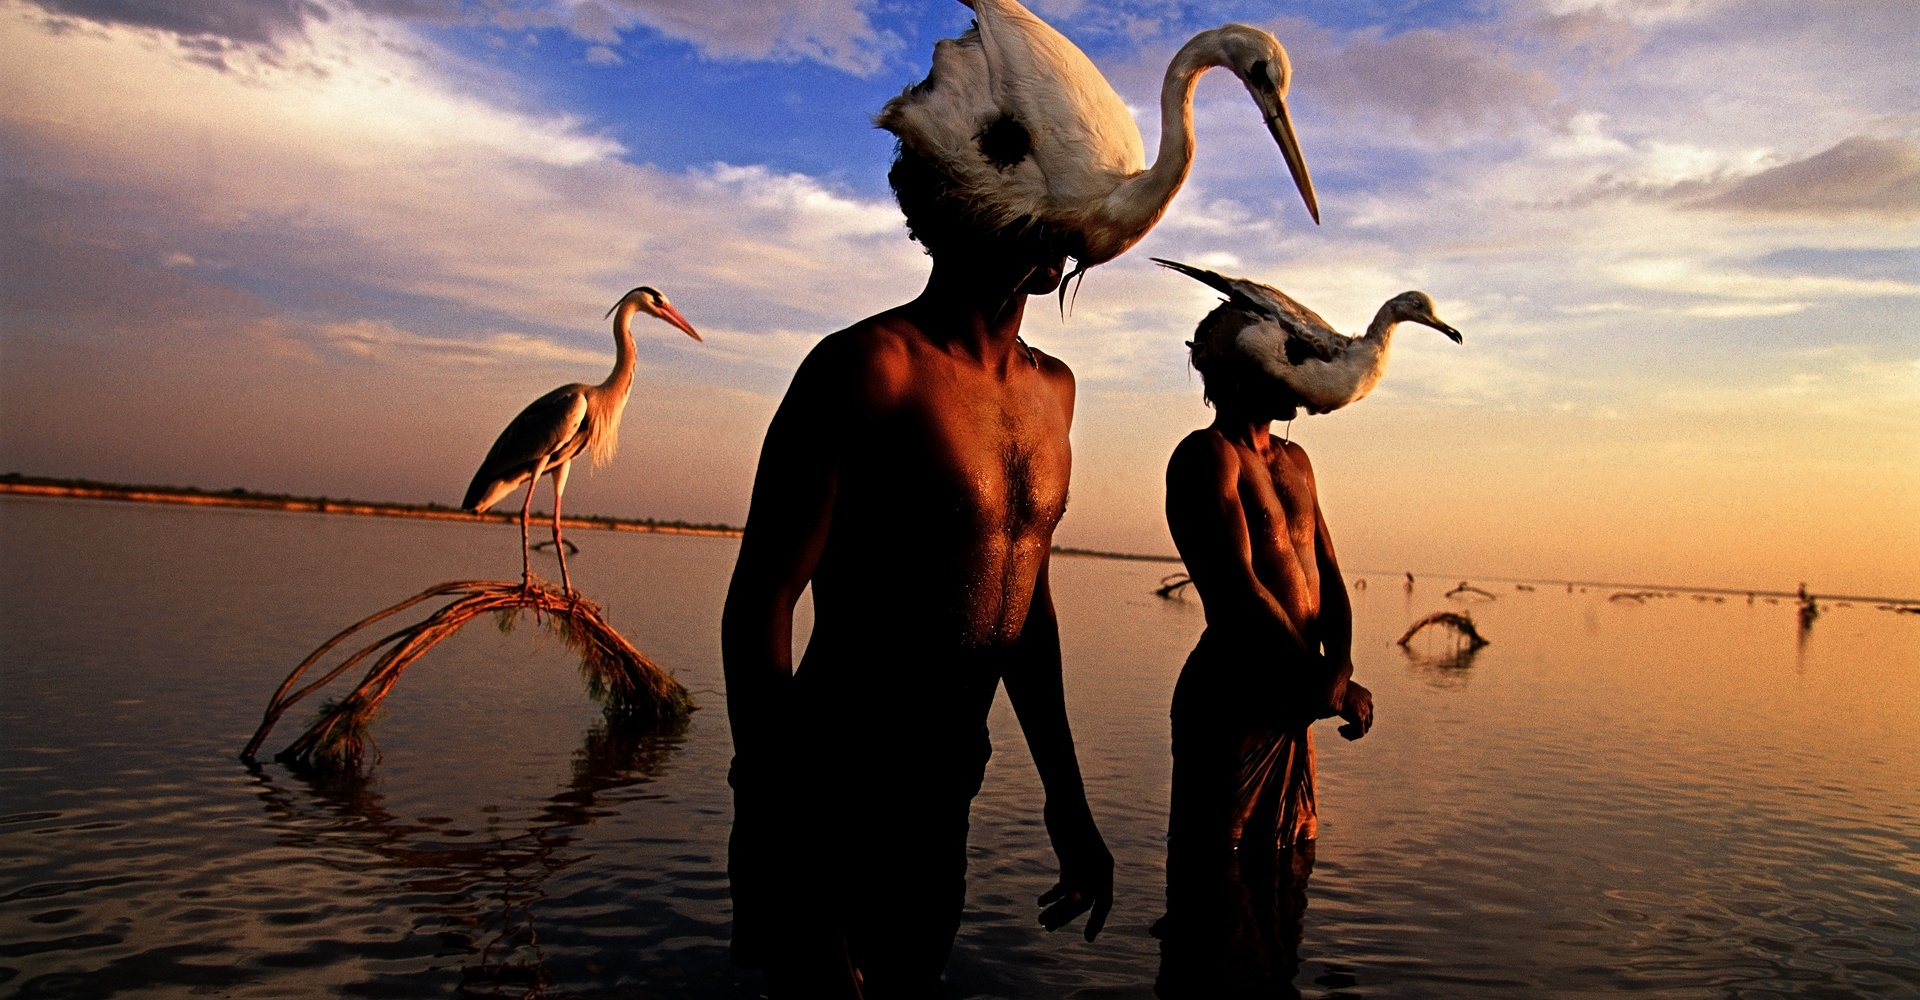 Bird Hunters, Indus River - Mohenjo Daro, Pakistan